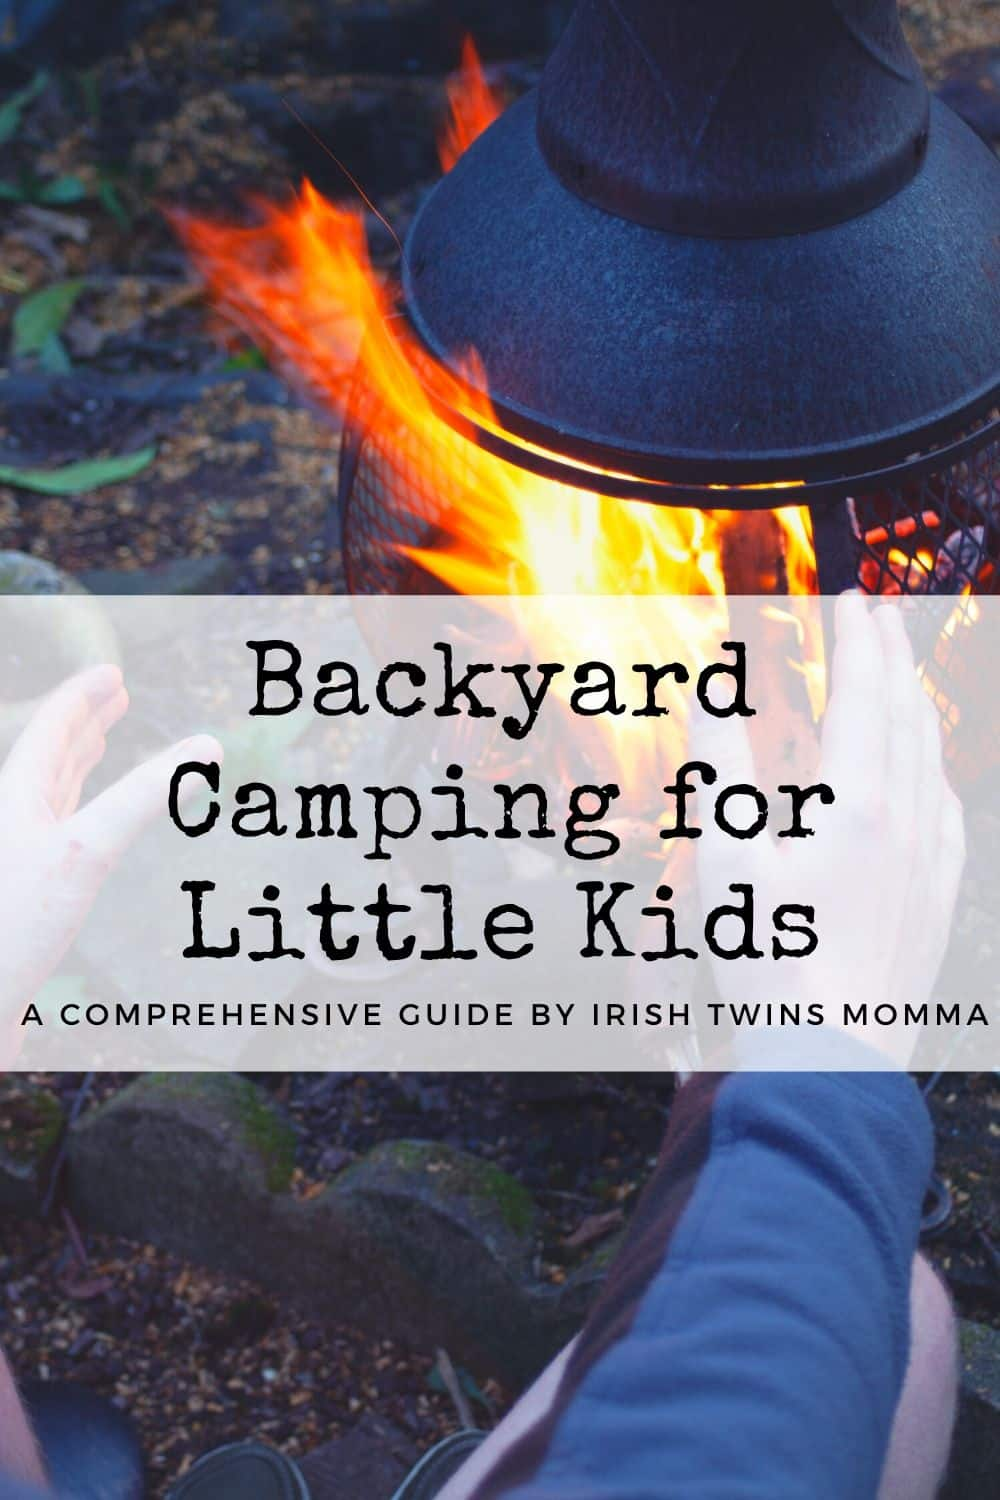 Having a fun backyard campout is one of the first camping experiences for little kids, with all the thrills but none of the scariness and danger of a proper camping trip. Here's how to plan a fun backyard camping trip for little kids. Camping in your backyard may not seem very glamorous, but it can be a fun and exciting adventure, especially for little kids. via @irishtwinsmom11